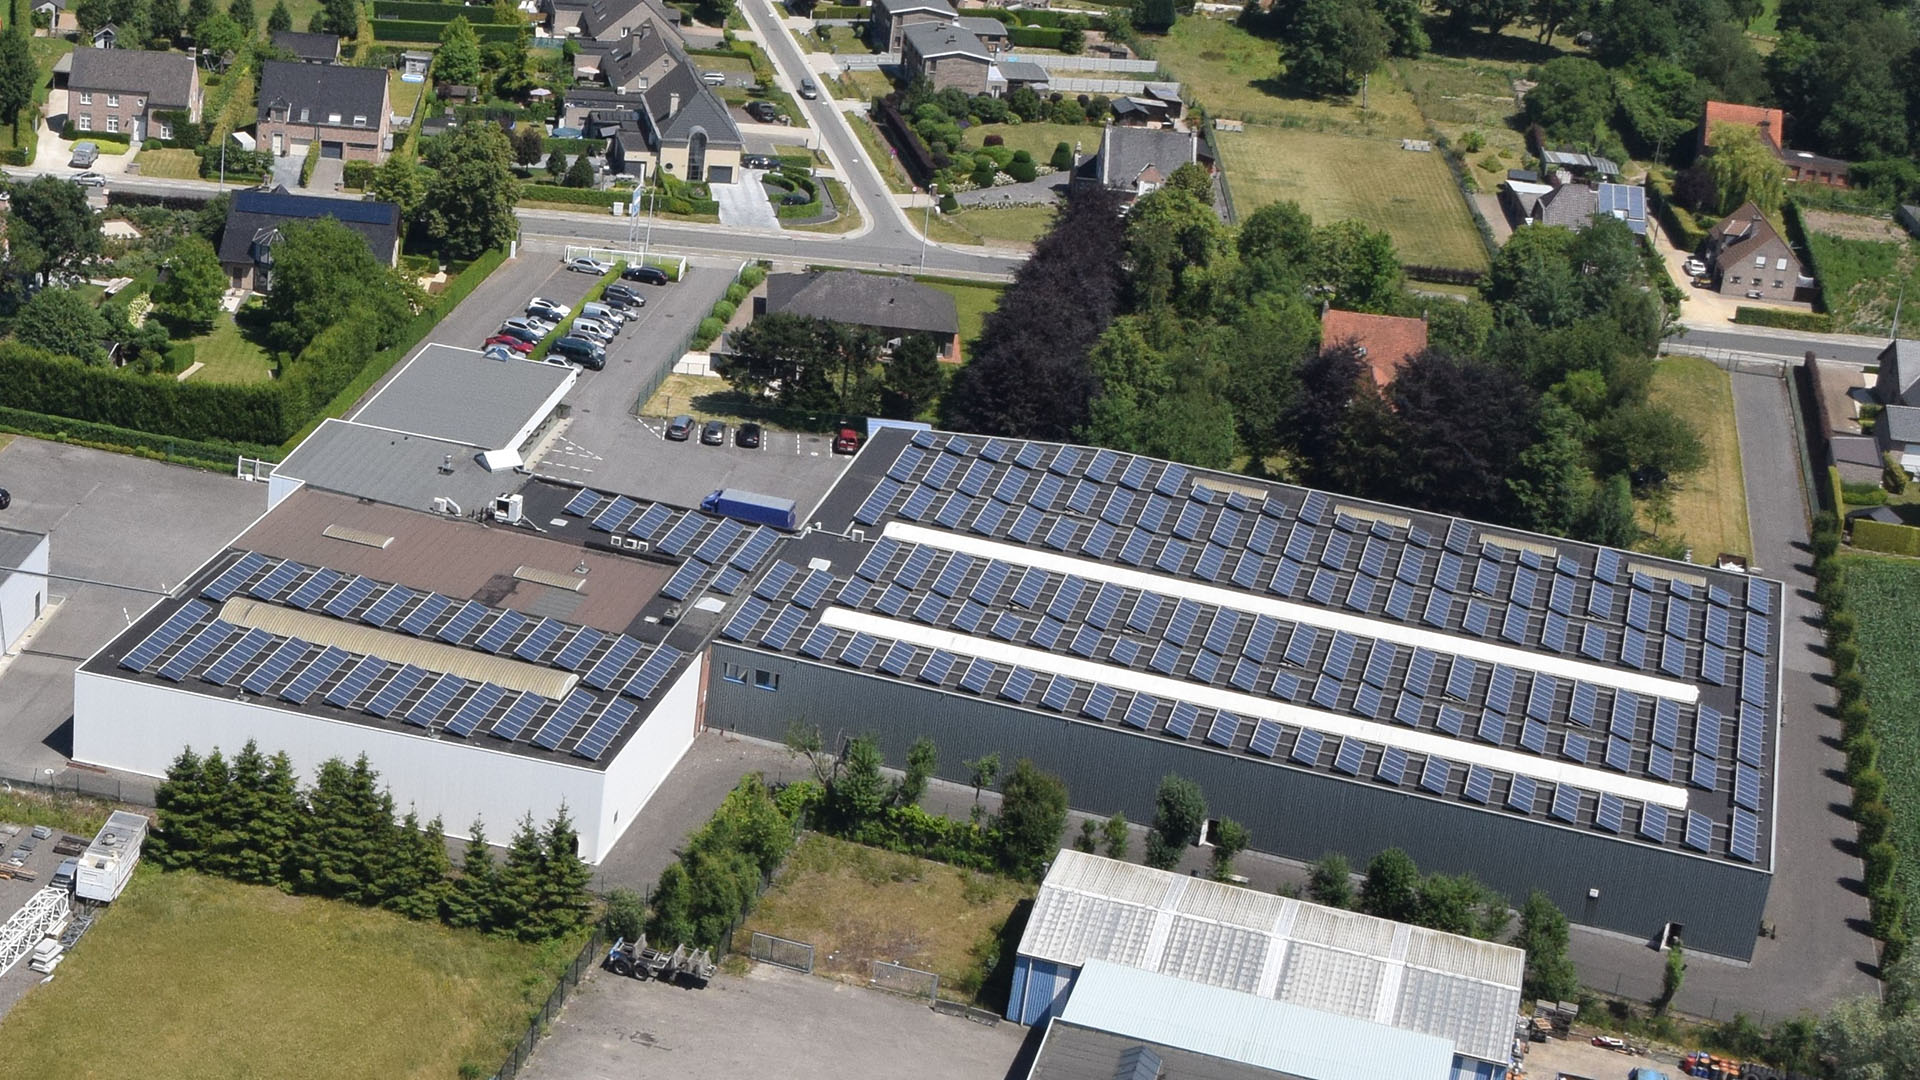 'we are serious about substainability: our photovoltaic systems are doing a great job'